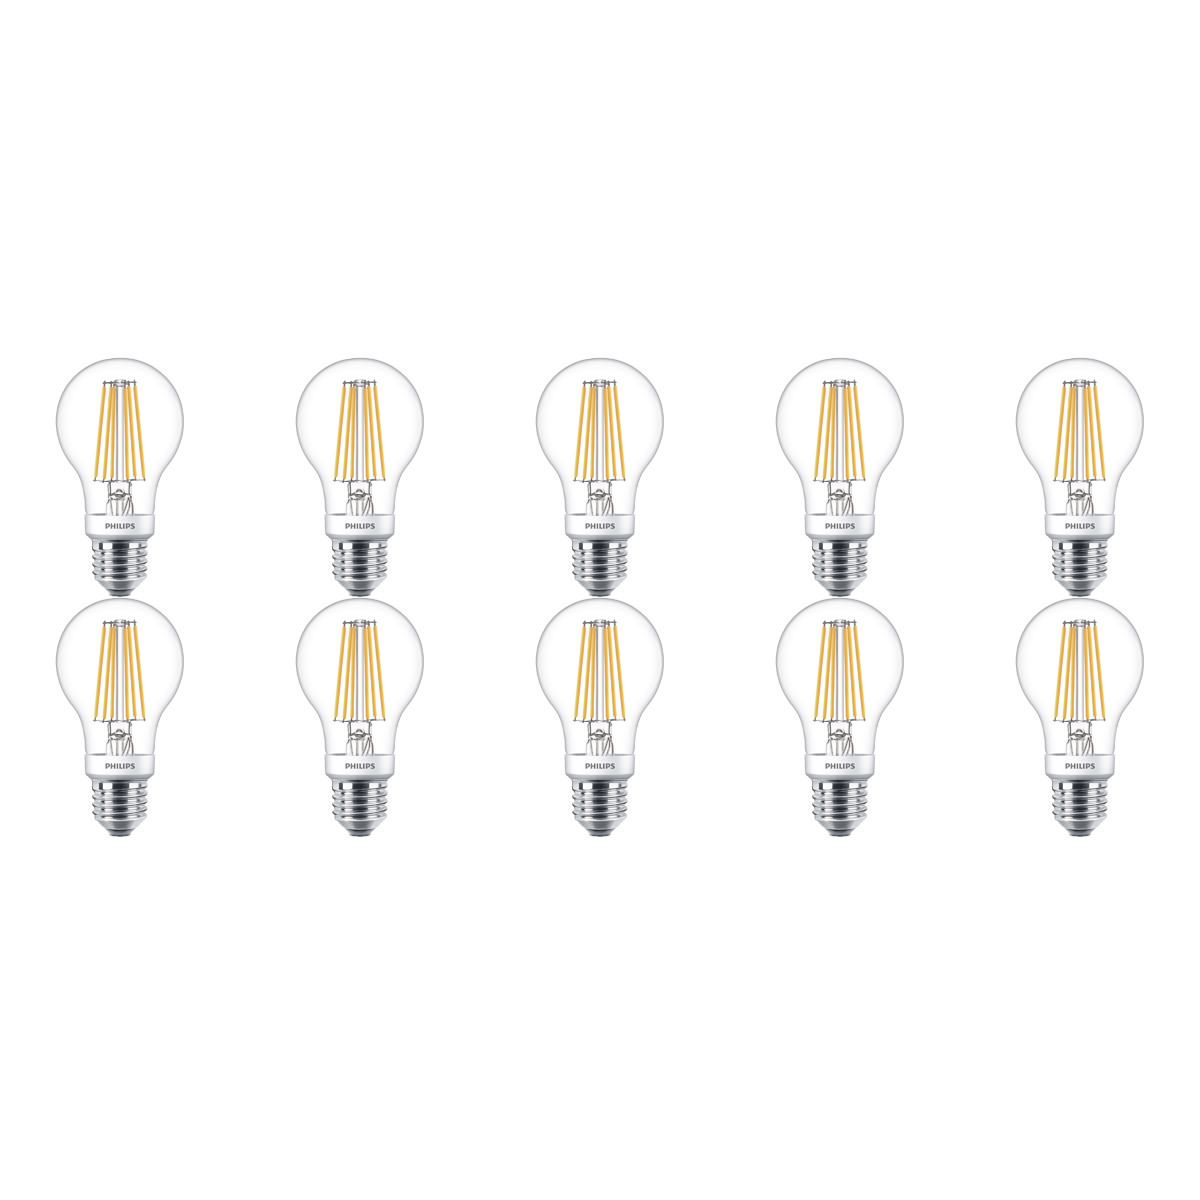 PHILIPS - LED Lamp 10 Pack - SceneSwitch Filament 827 A60 - E27 Fitting - Dimbaar - 1.6W-7.5W - Warm